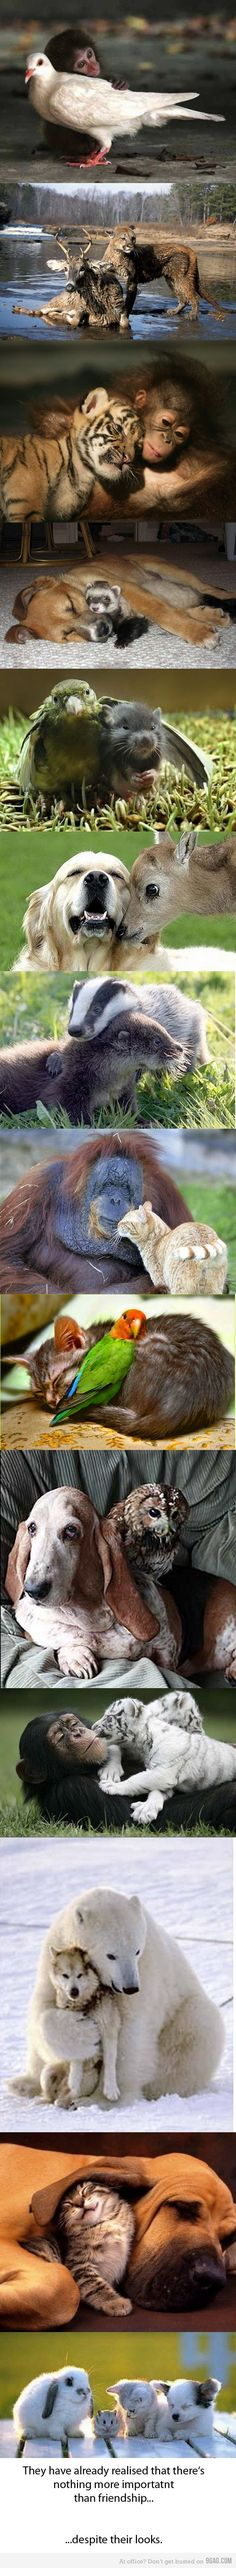 "Friendship... ""despite their looks."" Adorable :) #cutealert"